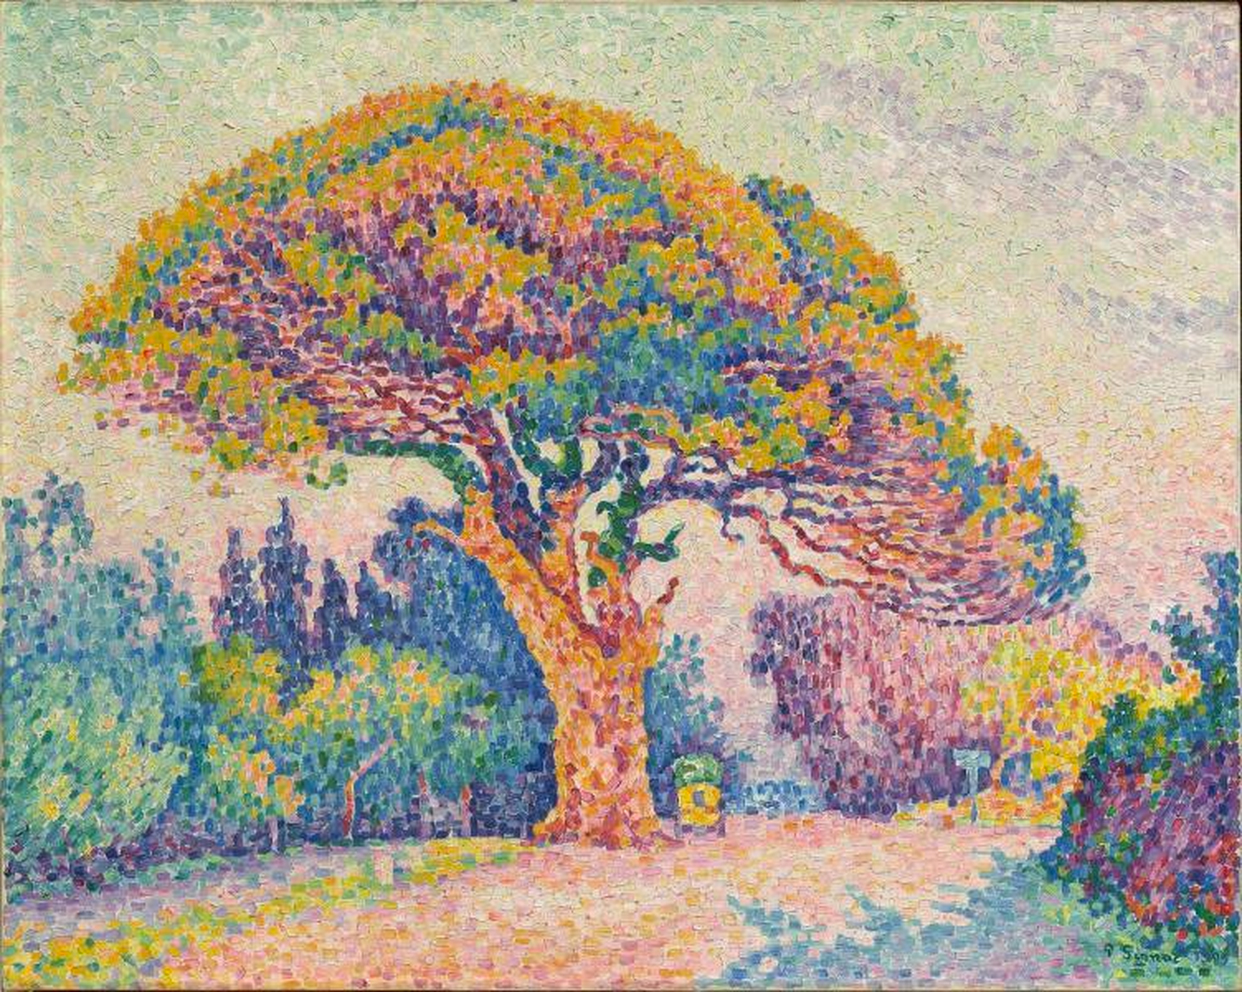 Paul Signac, 1909, The Pine Tree at Saint Tropez, oil on canvas